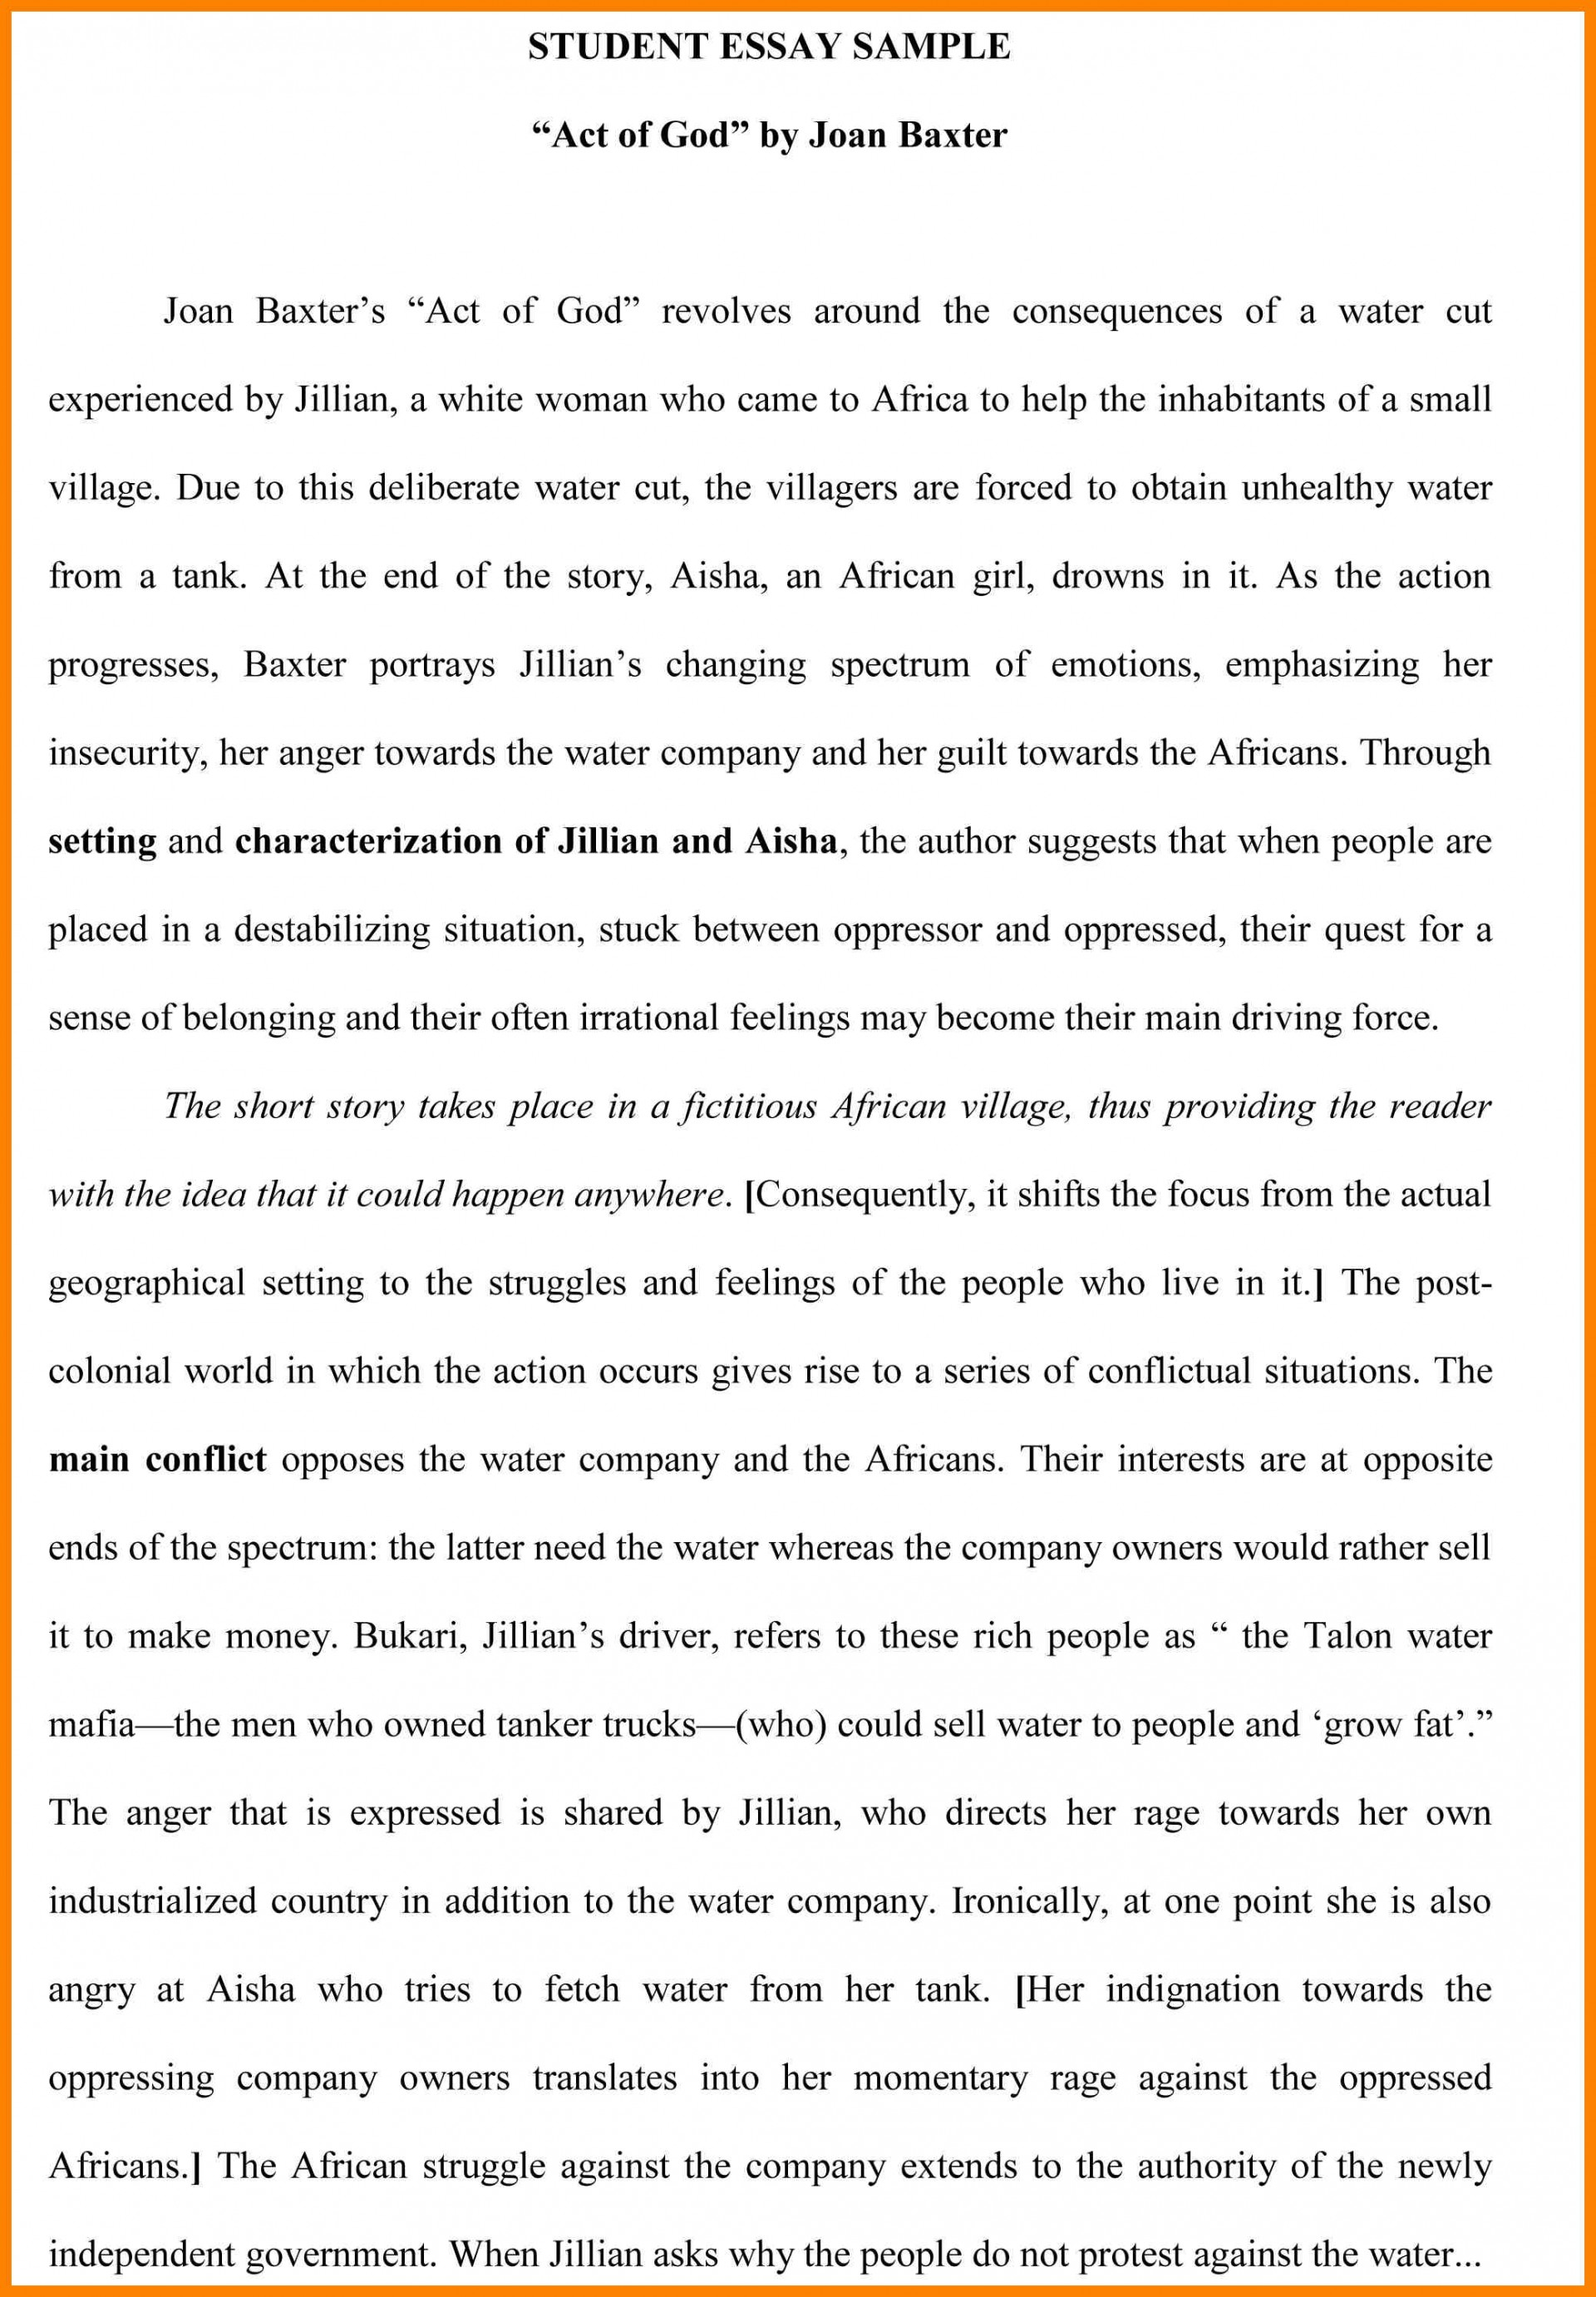 008 How To Write Better Essays Essay Example Examples Of Process Pdf Good Student Download Descriptive Great Law Steve Foster Lauren Awesome Can I In English Literature Greetham 1920